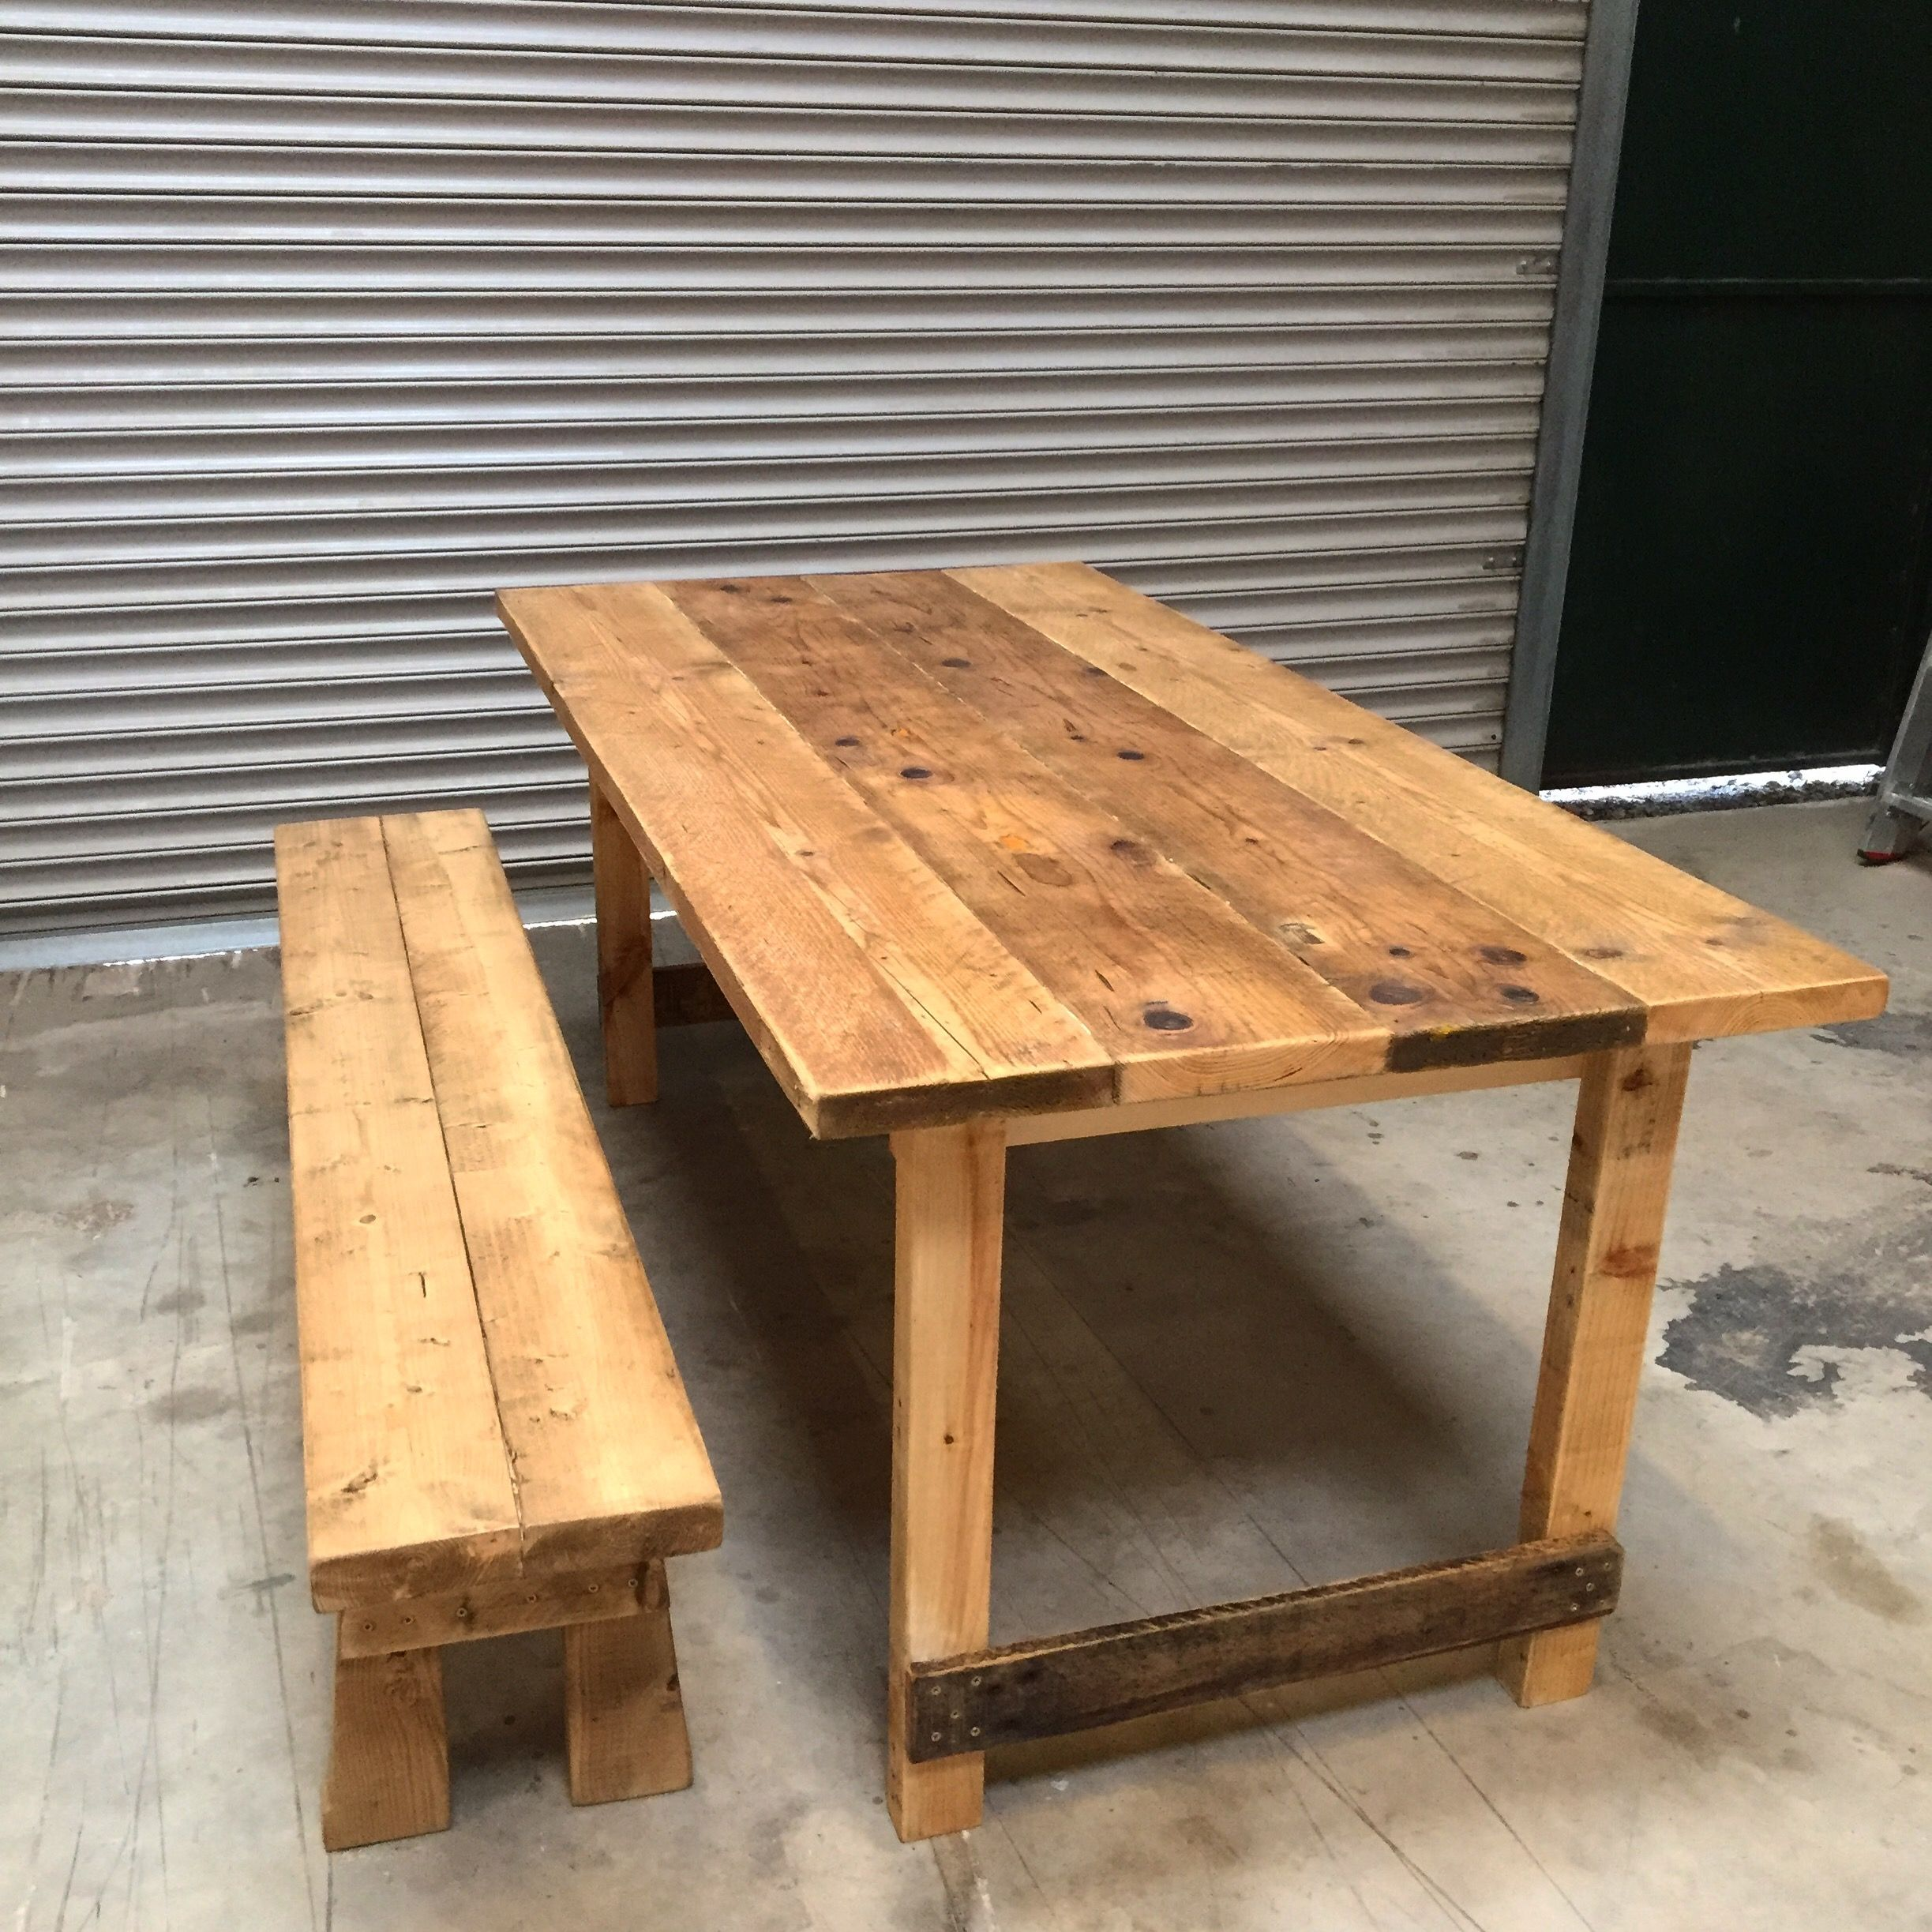 Made From Reclaimed Wood 175 290 Wooden Tables Table